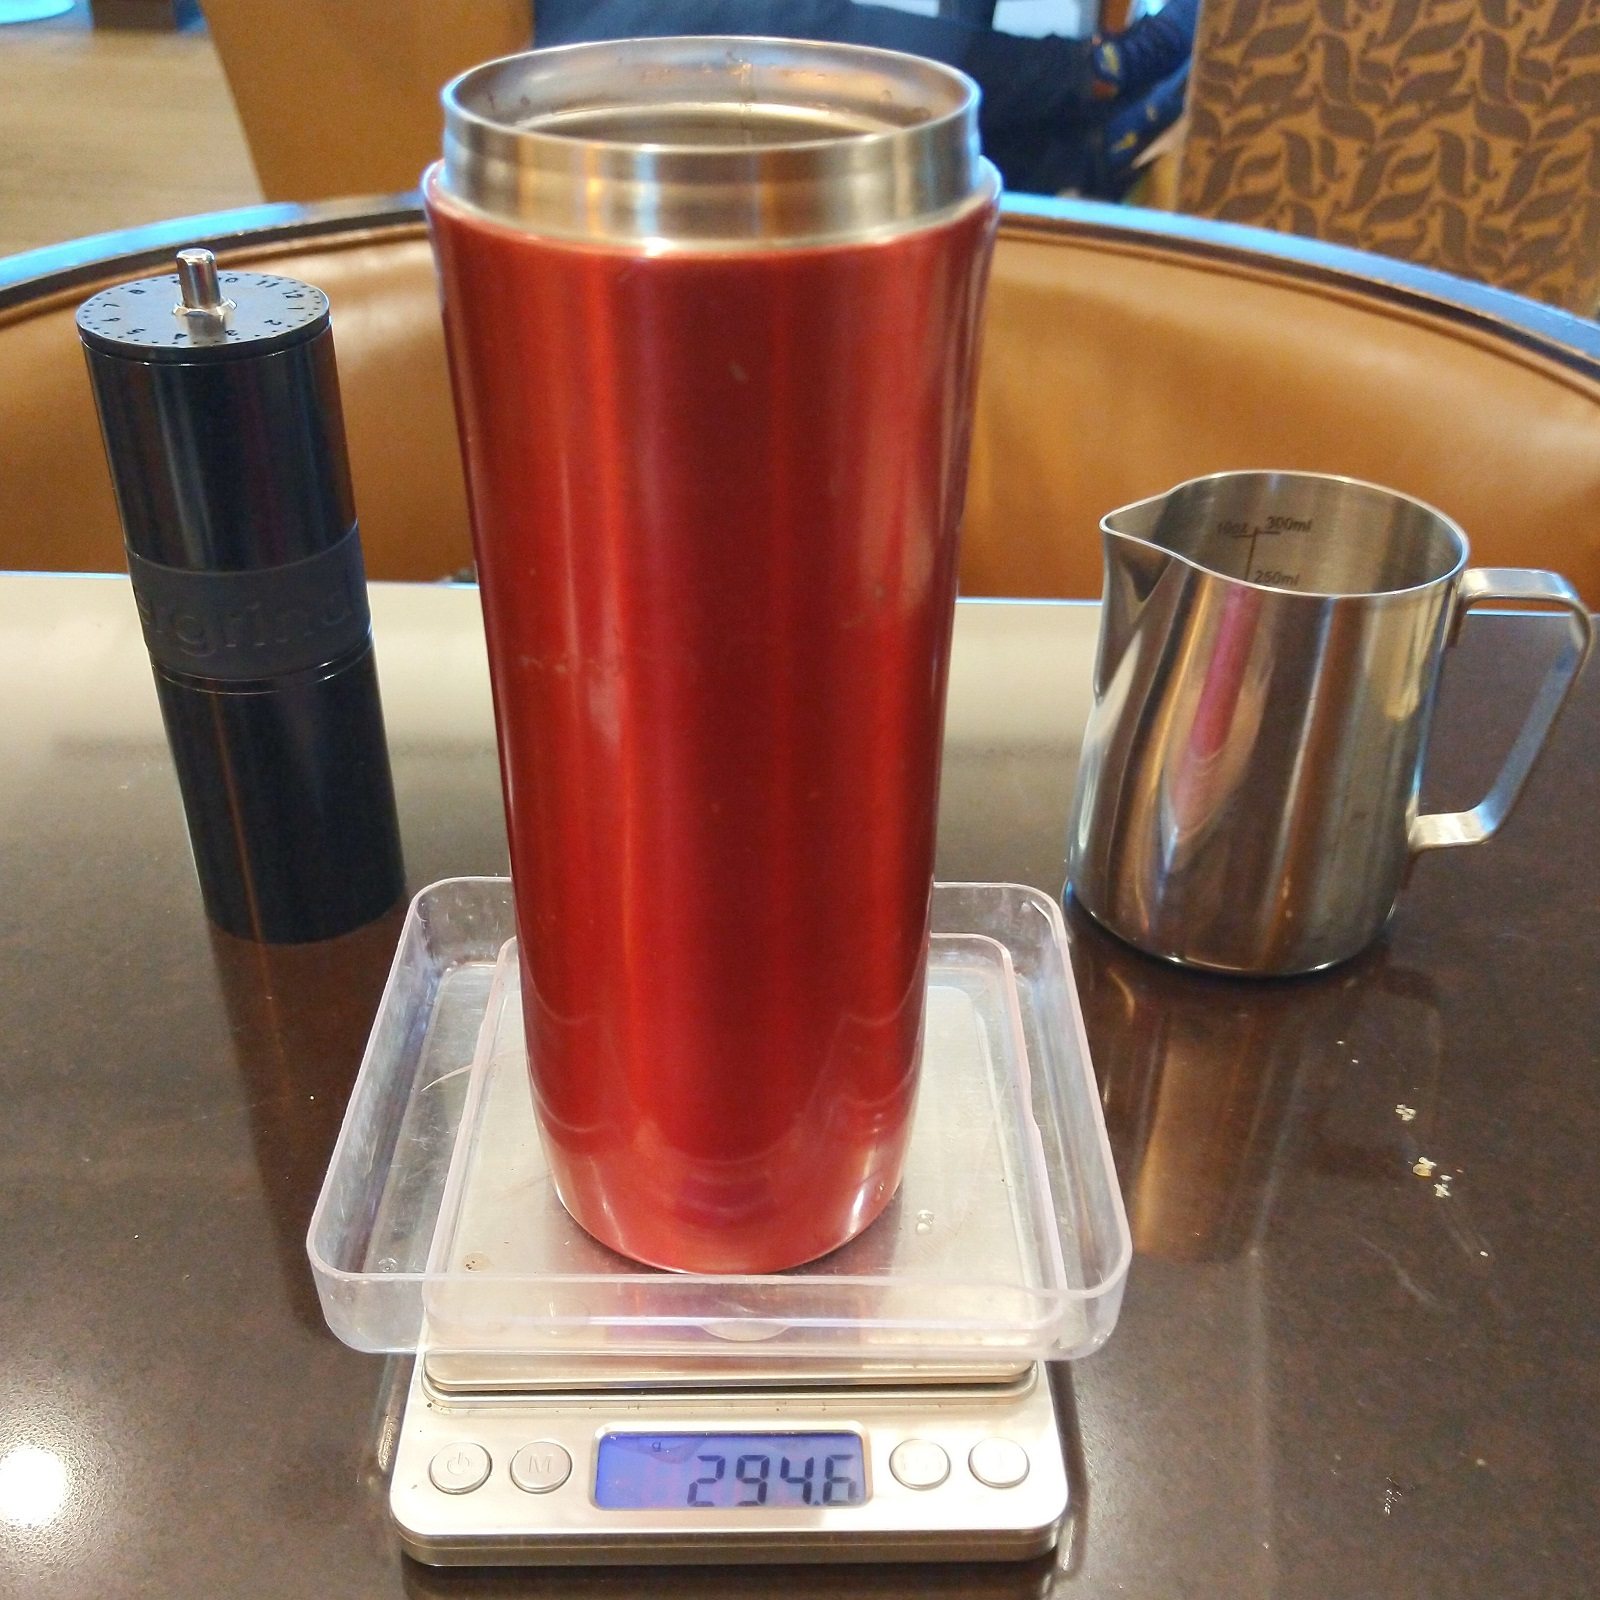 Making airline coffee bearable: make your own! My Espro Travel Press and Knock Aergrind in the American Airlines lounge at San Francisco Airport before my flight to Phoenix.